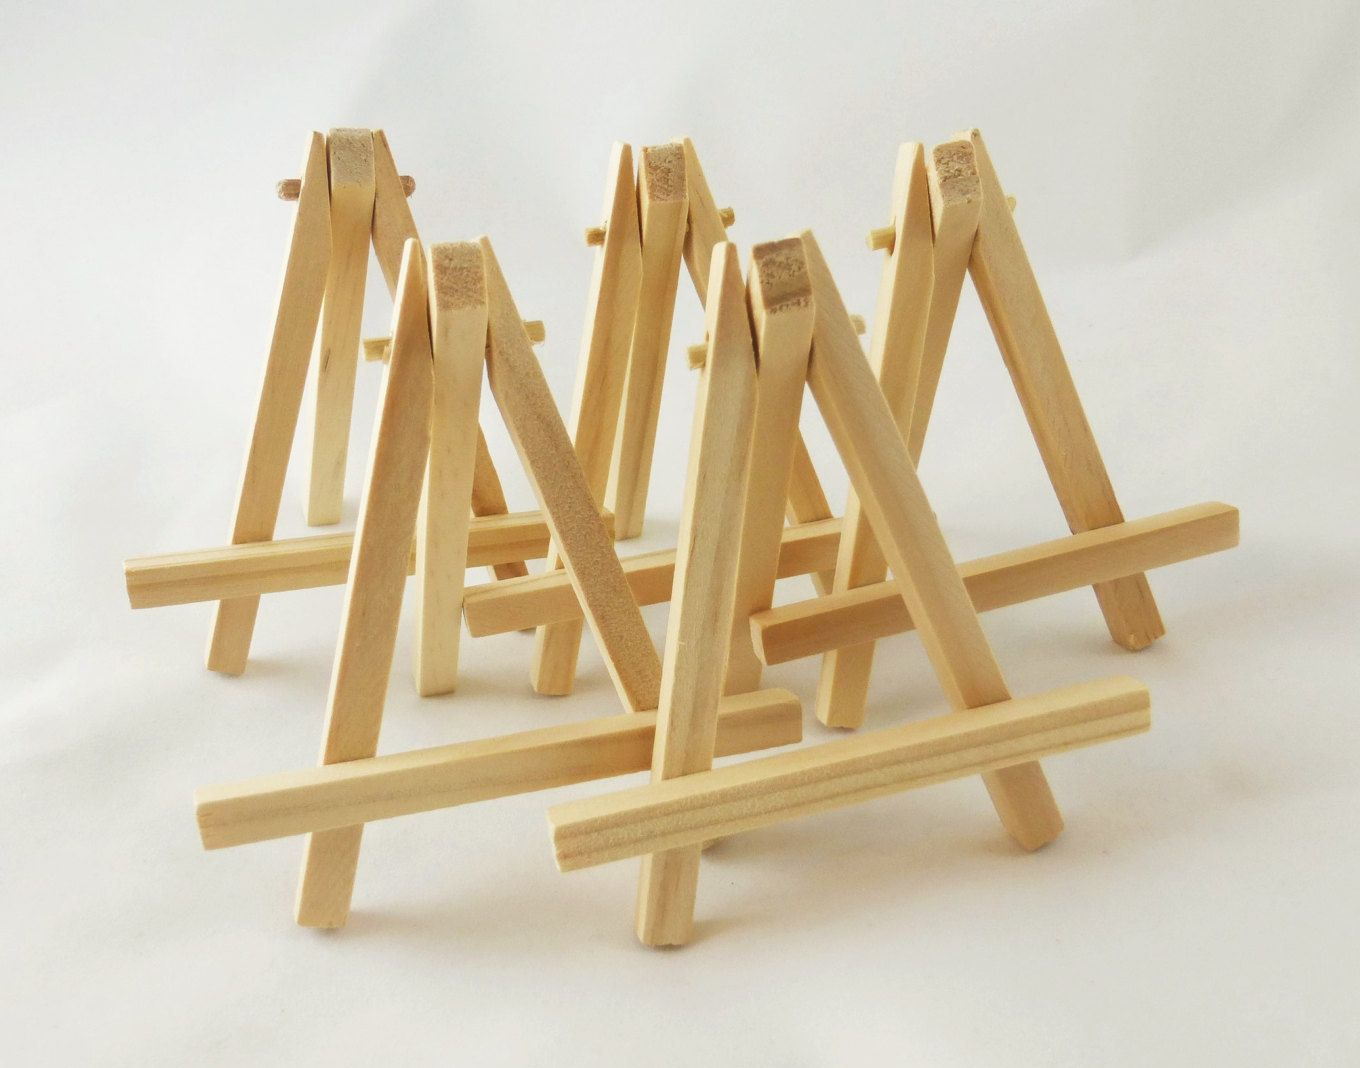 Small Wood Easels 5 Natural Tabletop Miniature Art Display Table Signs Place Cards By